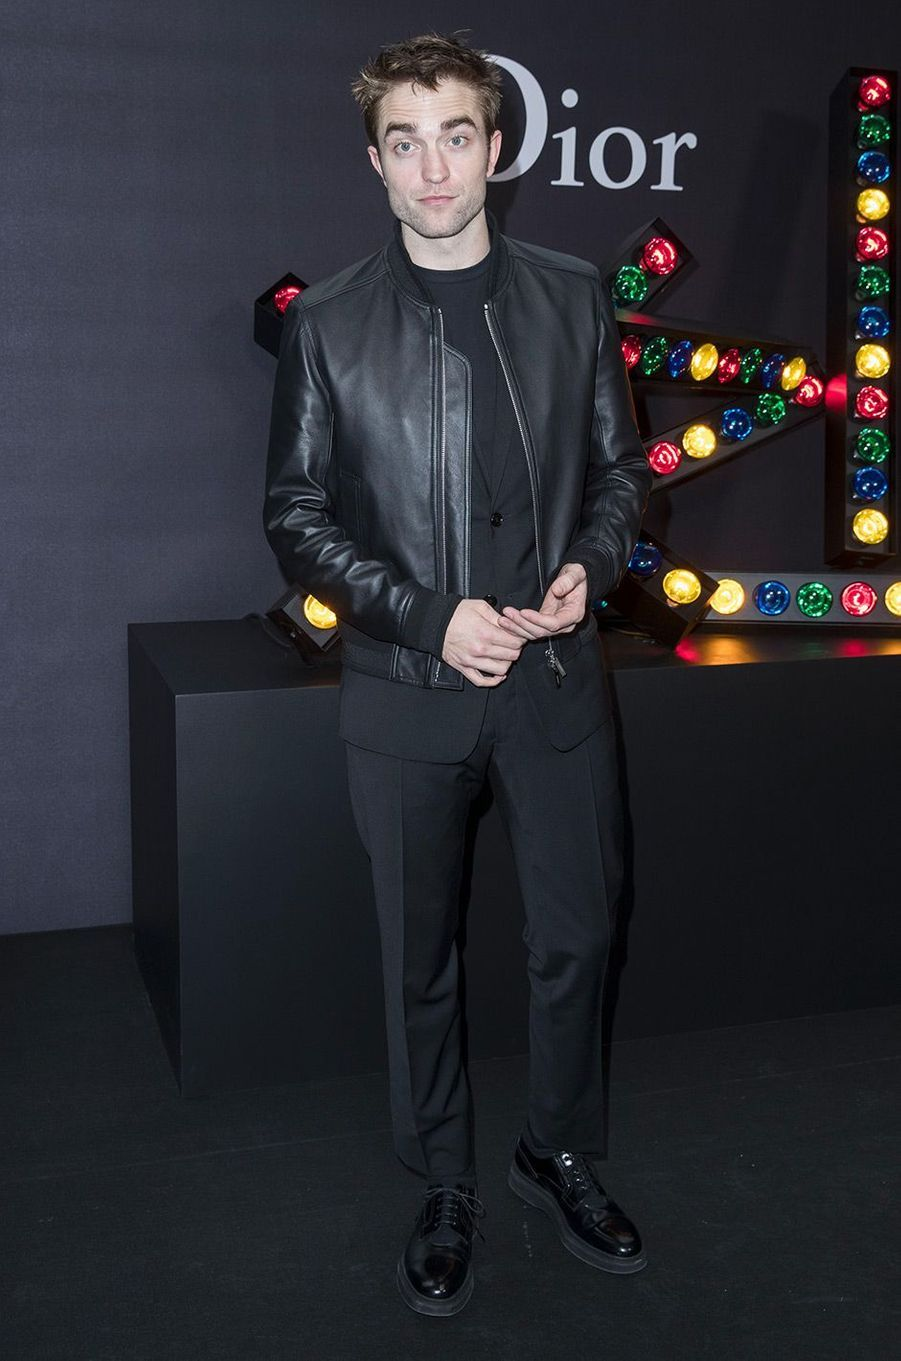 Robert Pattinson au défilé Dior